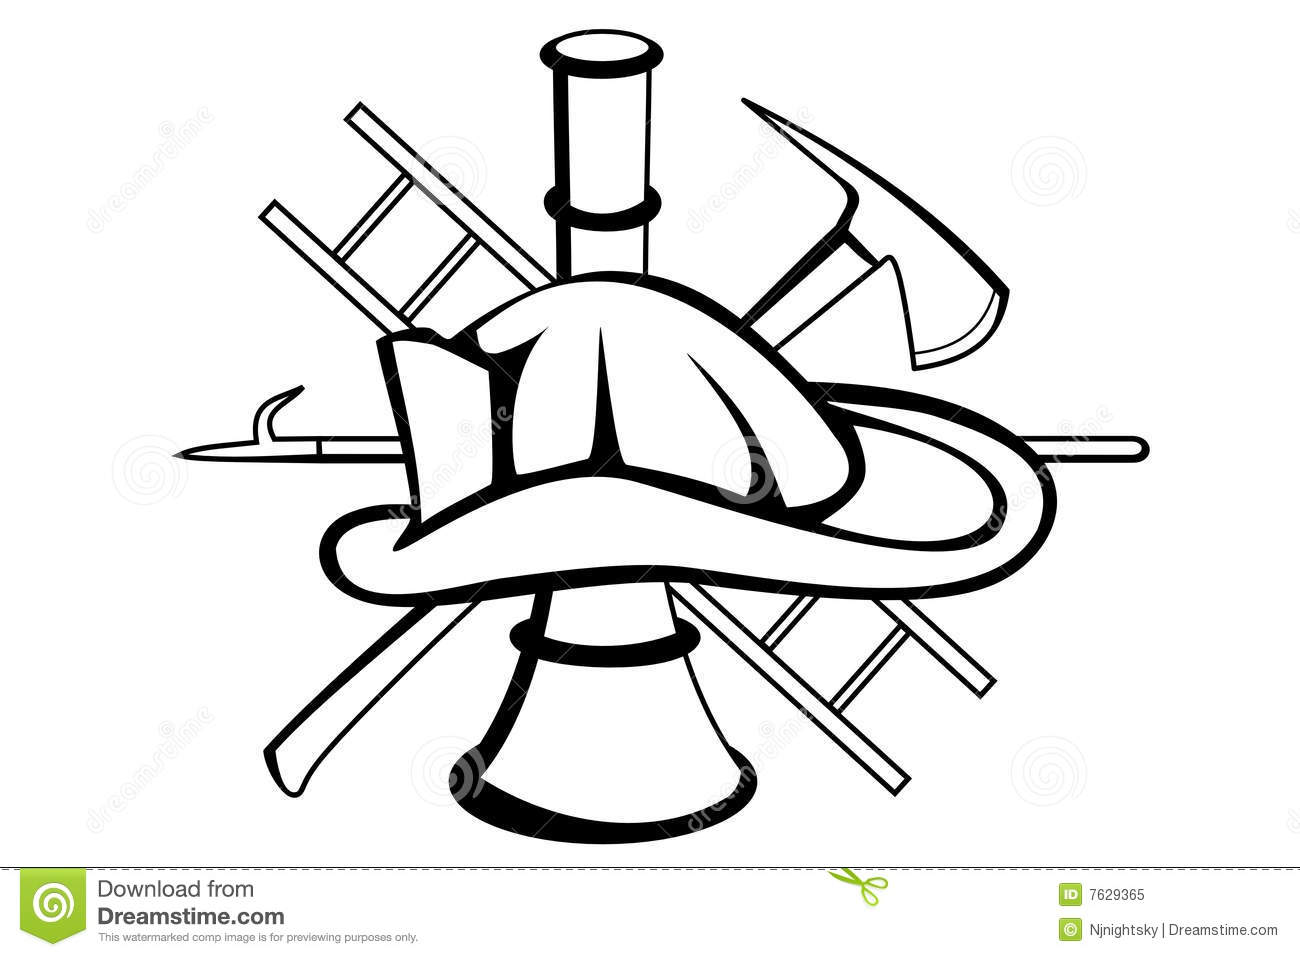 Fire Plan Symbols Coloring Pages